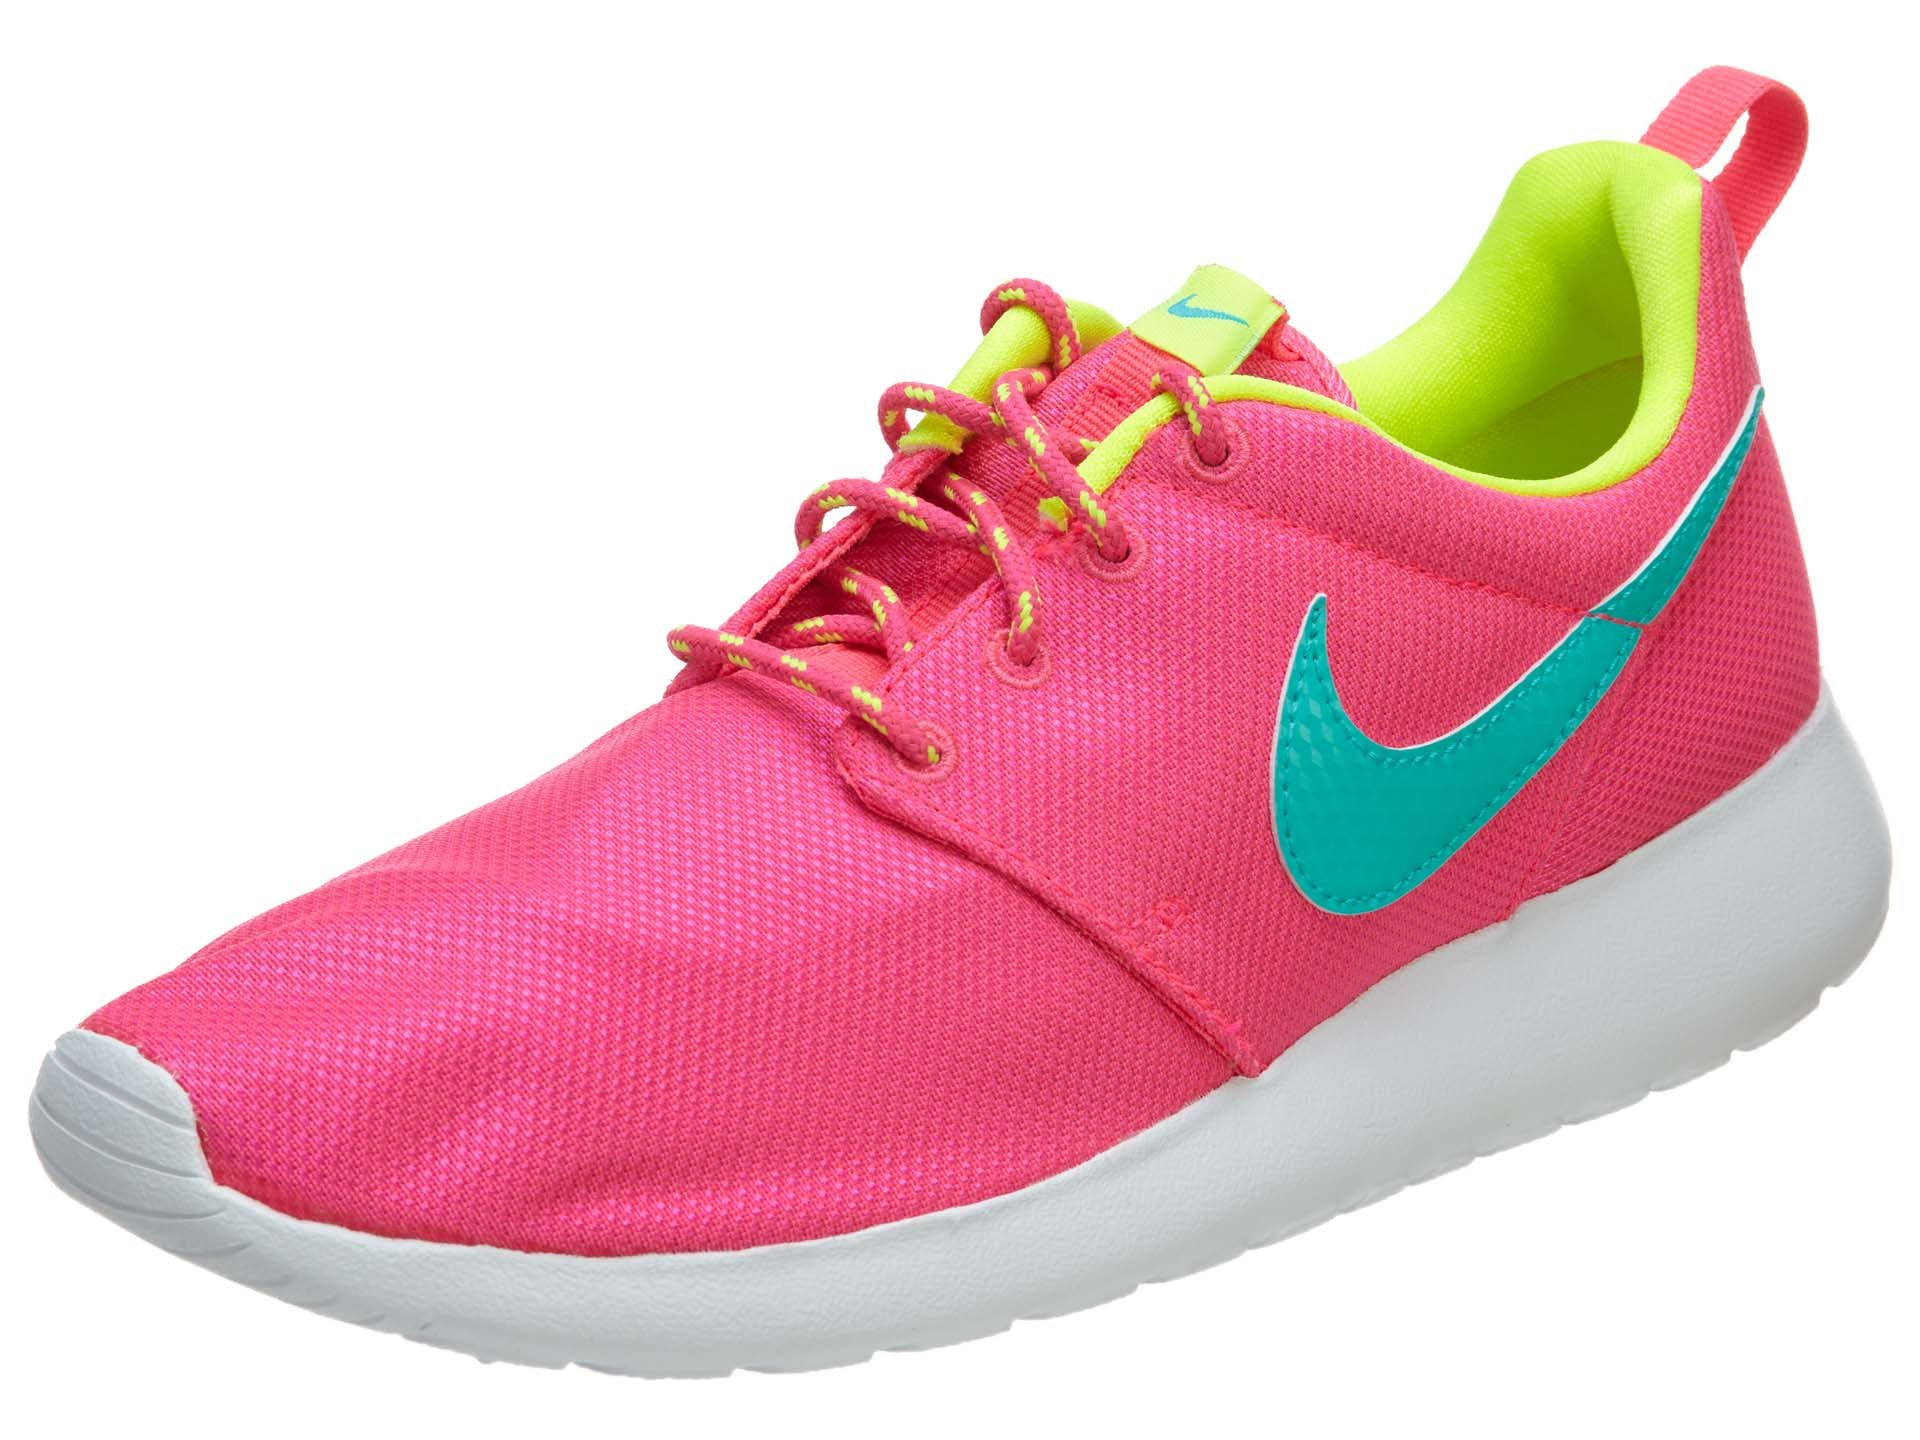 Nike Roshe Run Pink Youths Trainers 7US (6UK) by Nike (Image #1)